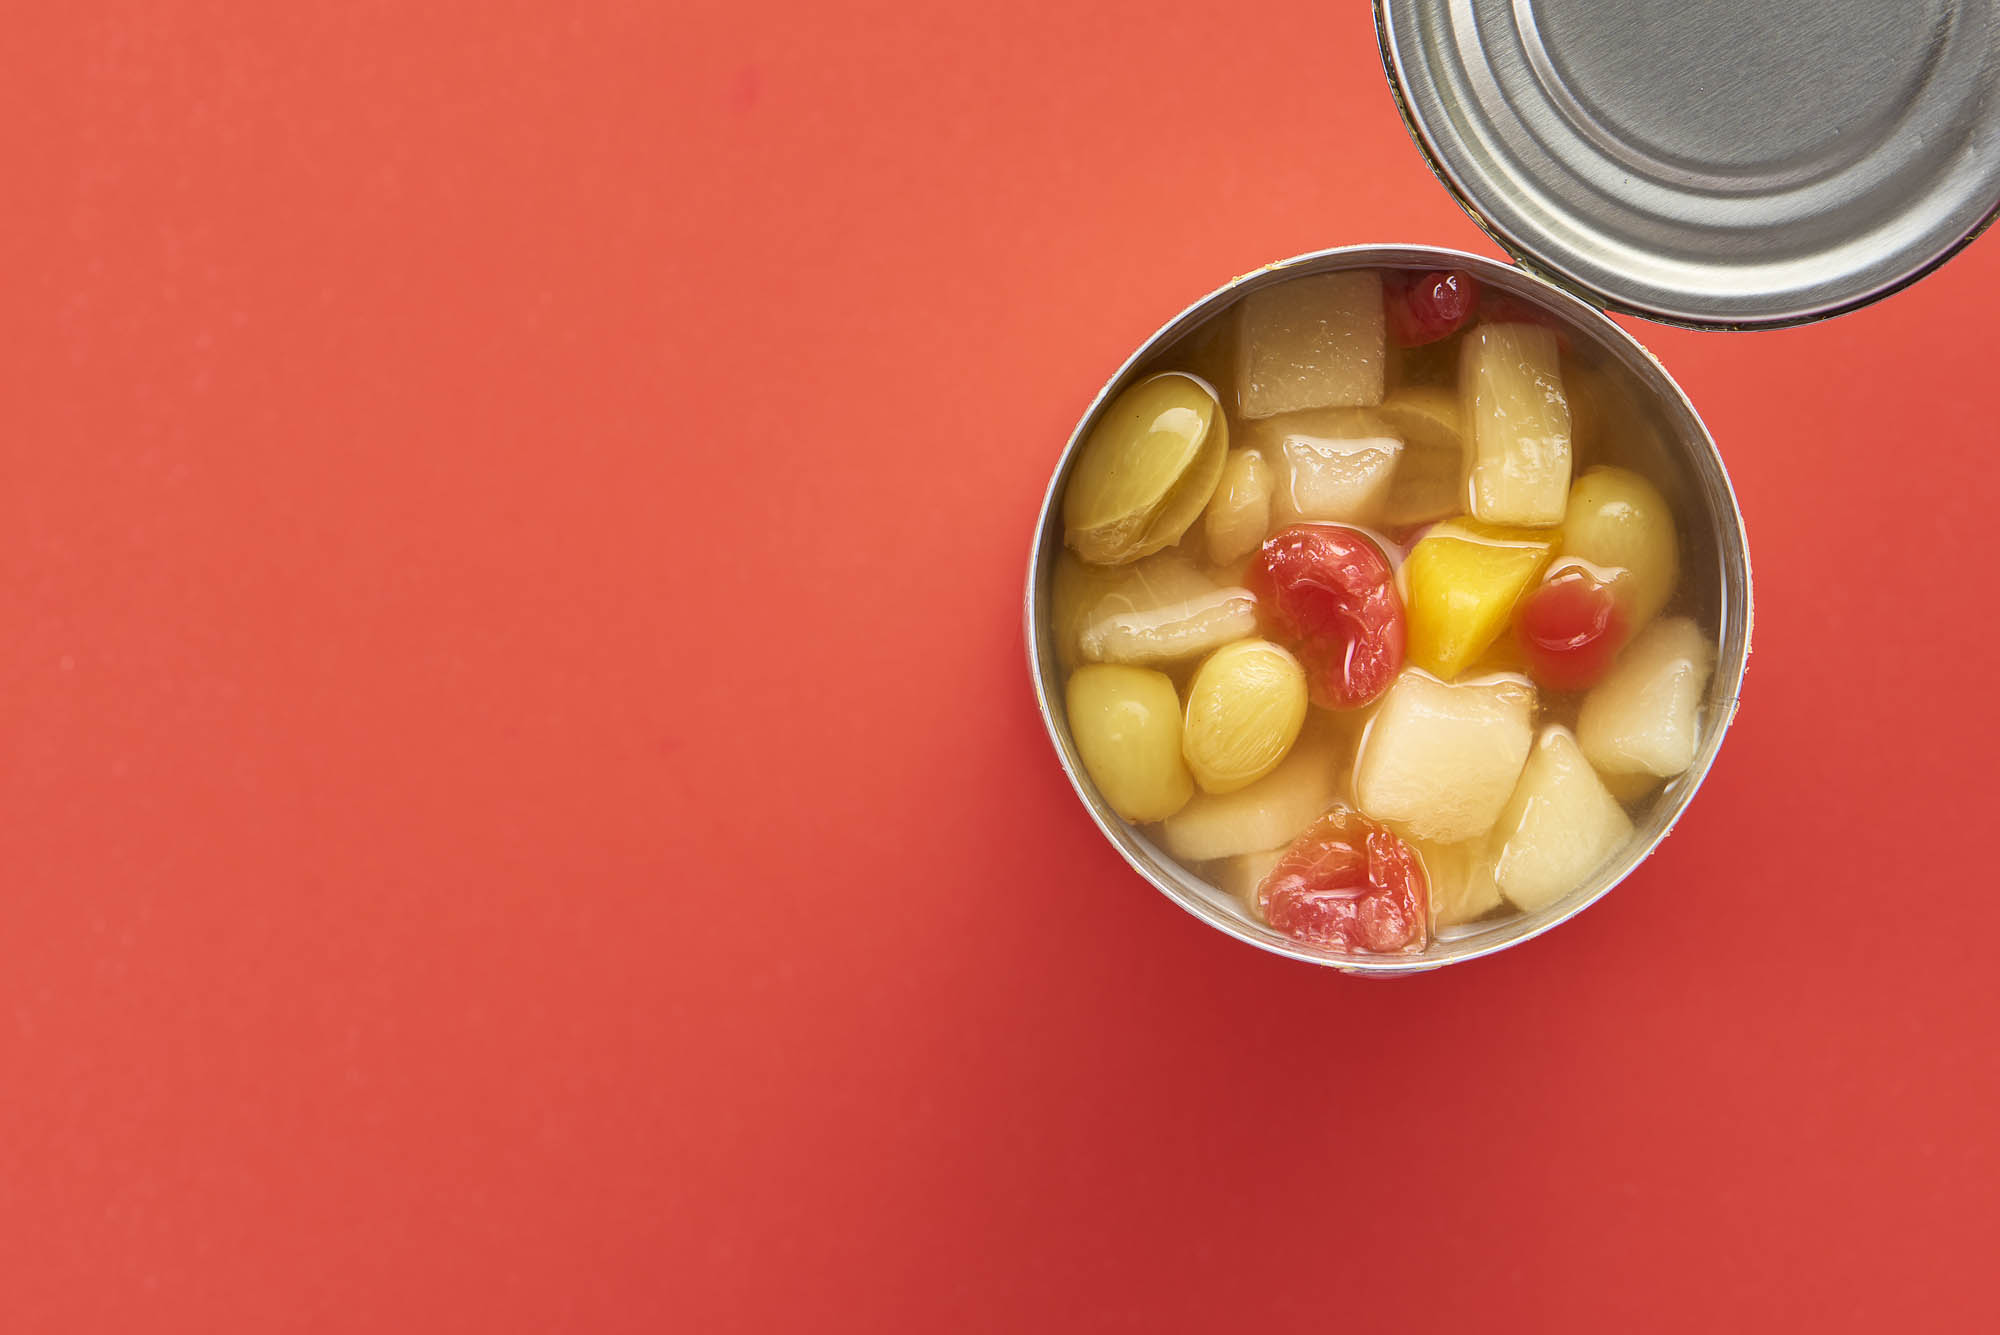 Canned Fruit Salad